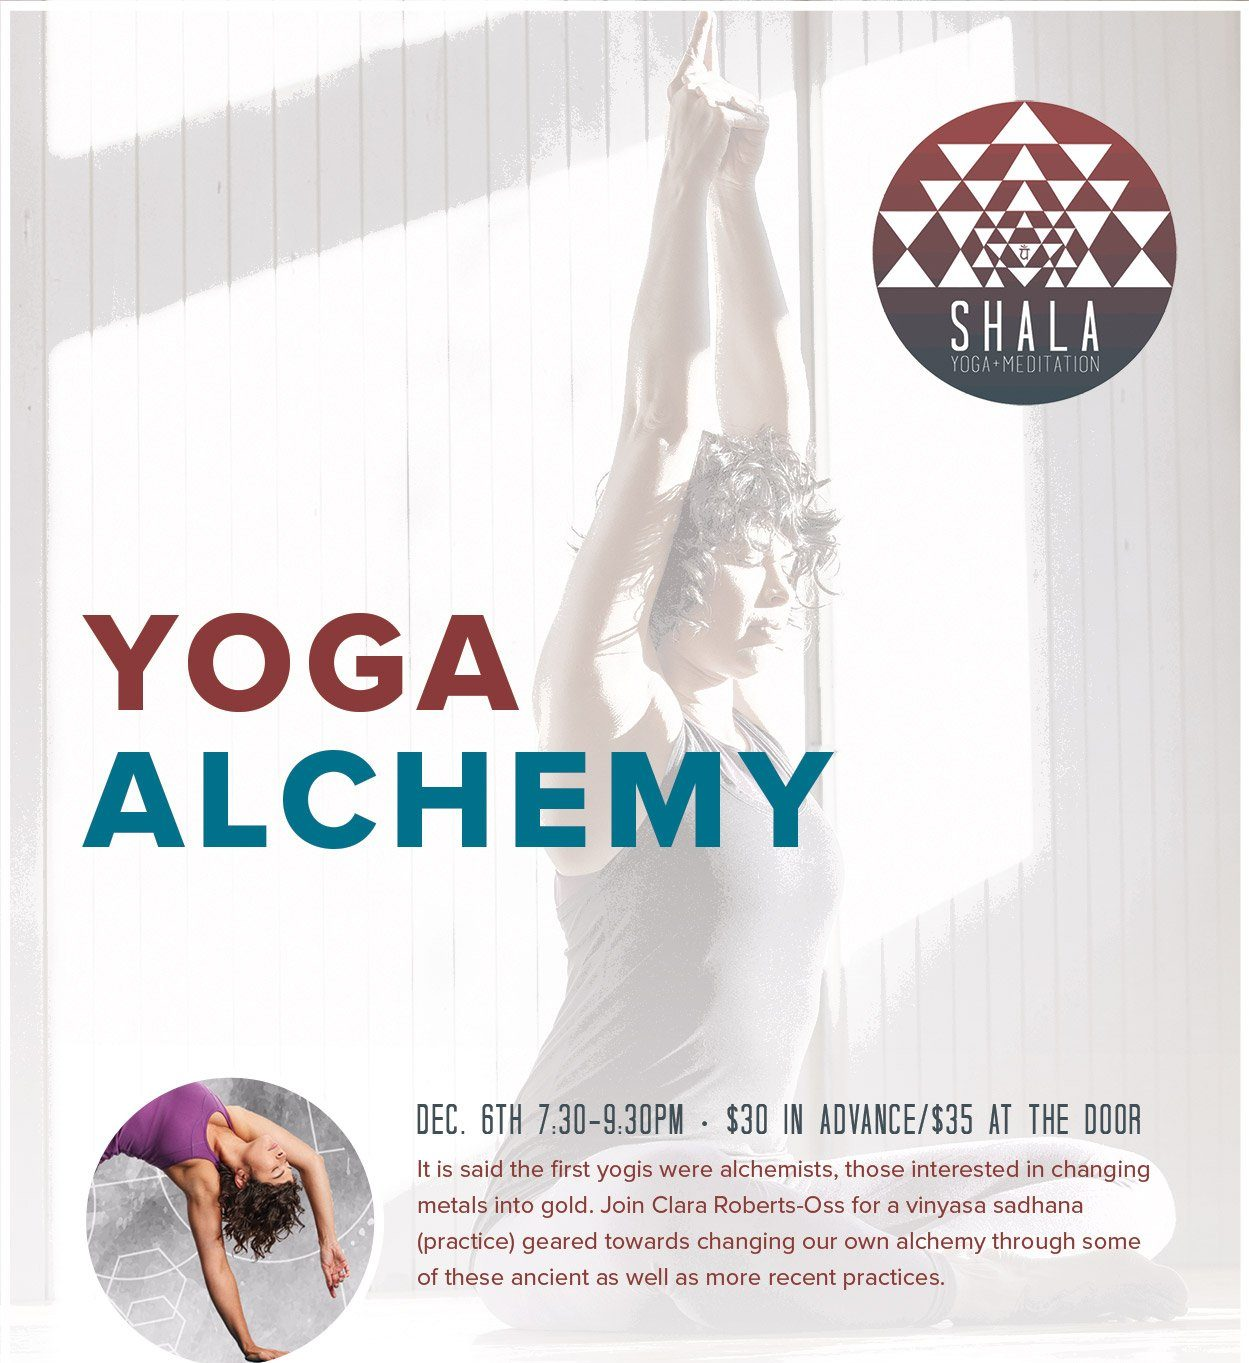 yoga alchemy shala